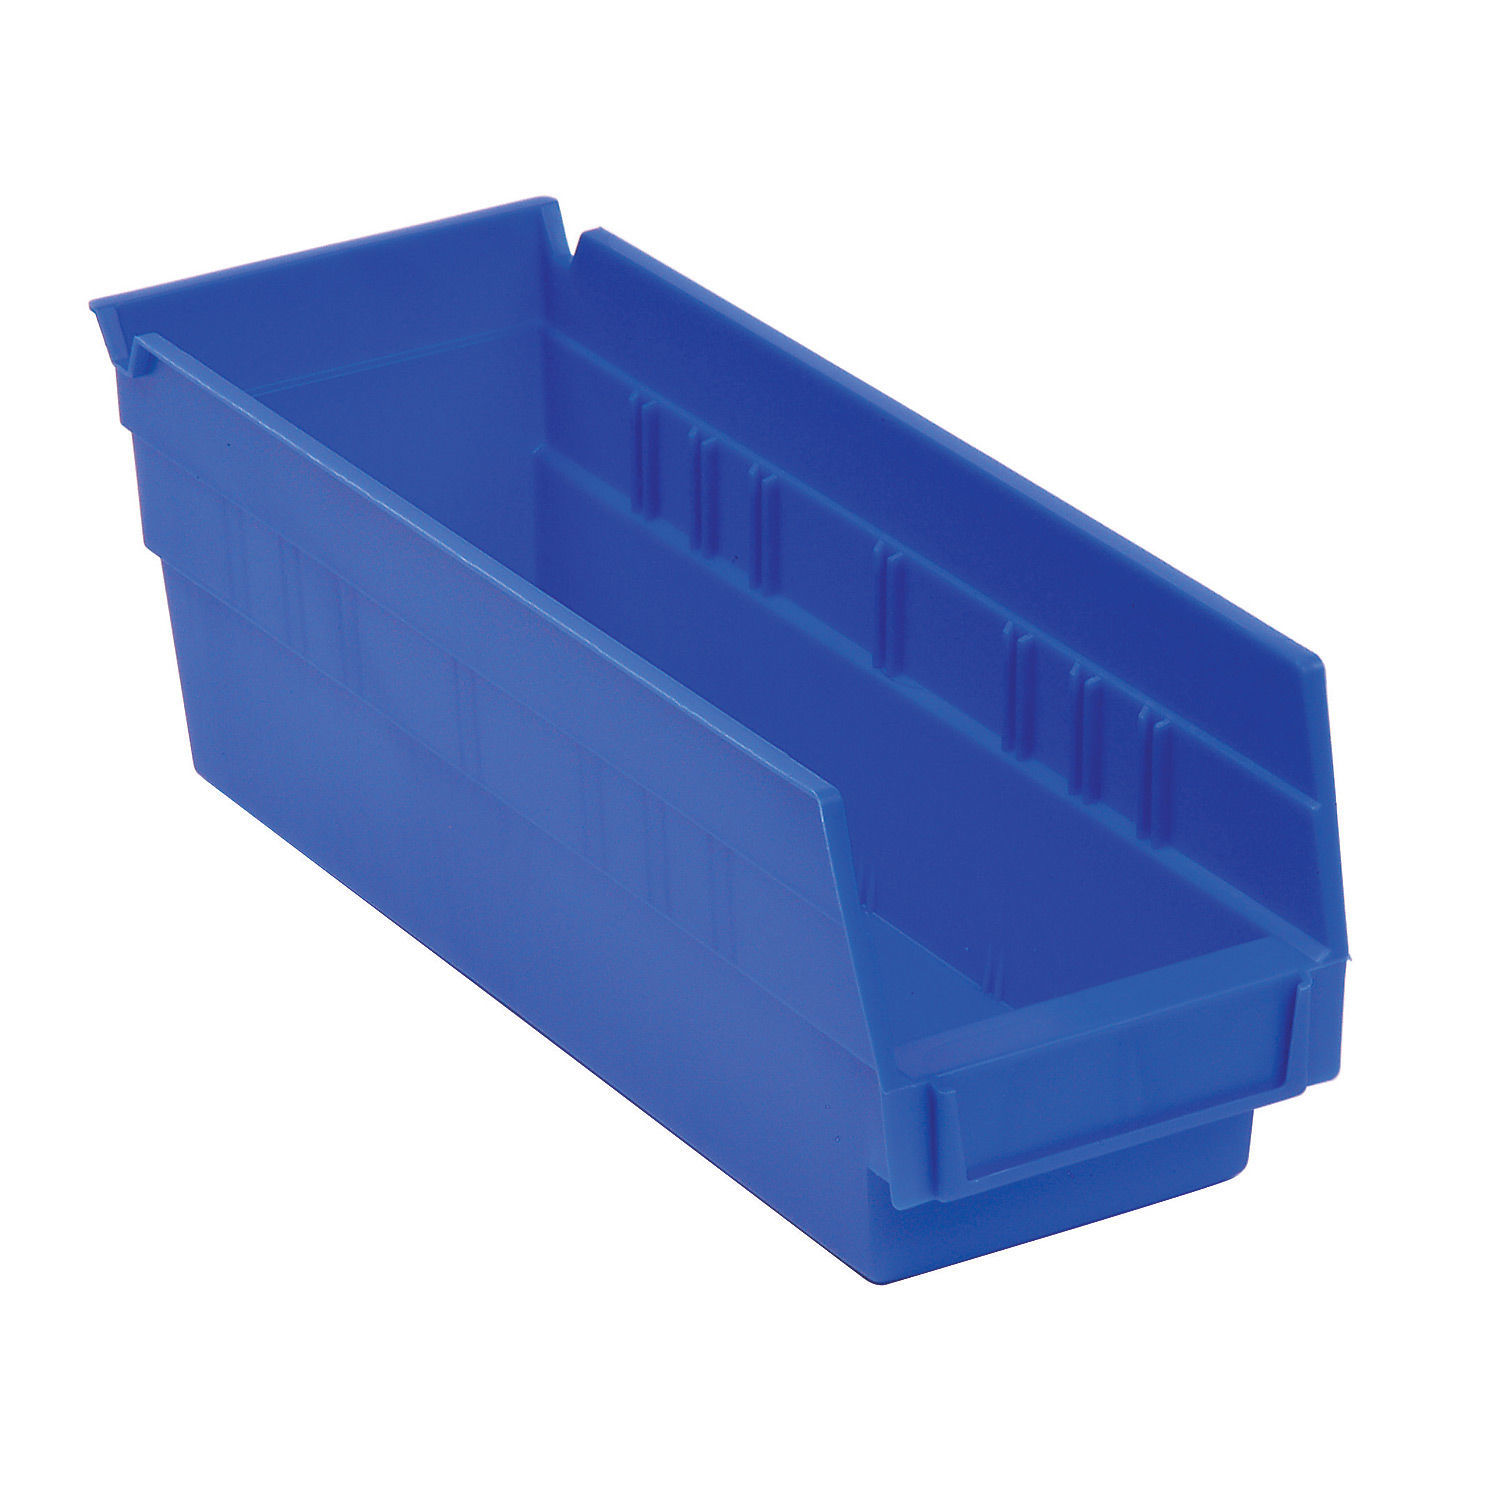 "Akro-Mils Plastic Shelf Bin, 6-5/8""W x 17-7/8""D x 4""H Blue, Lot of 12"